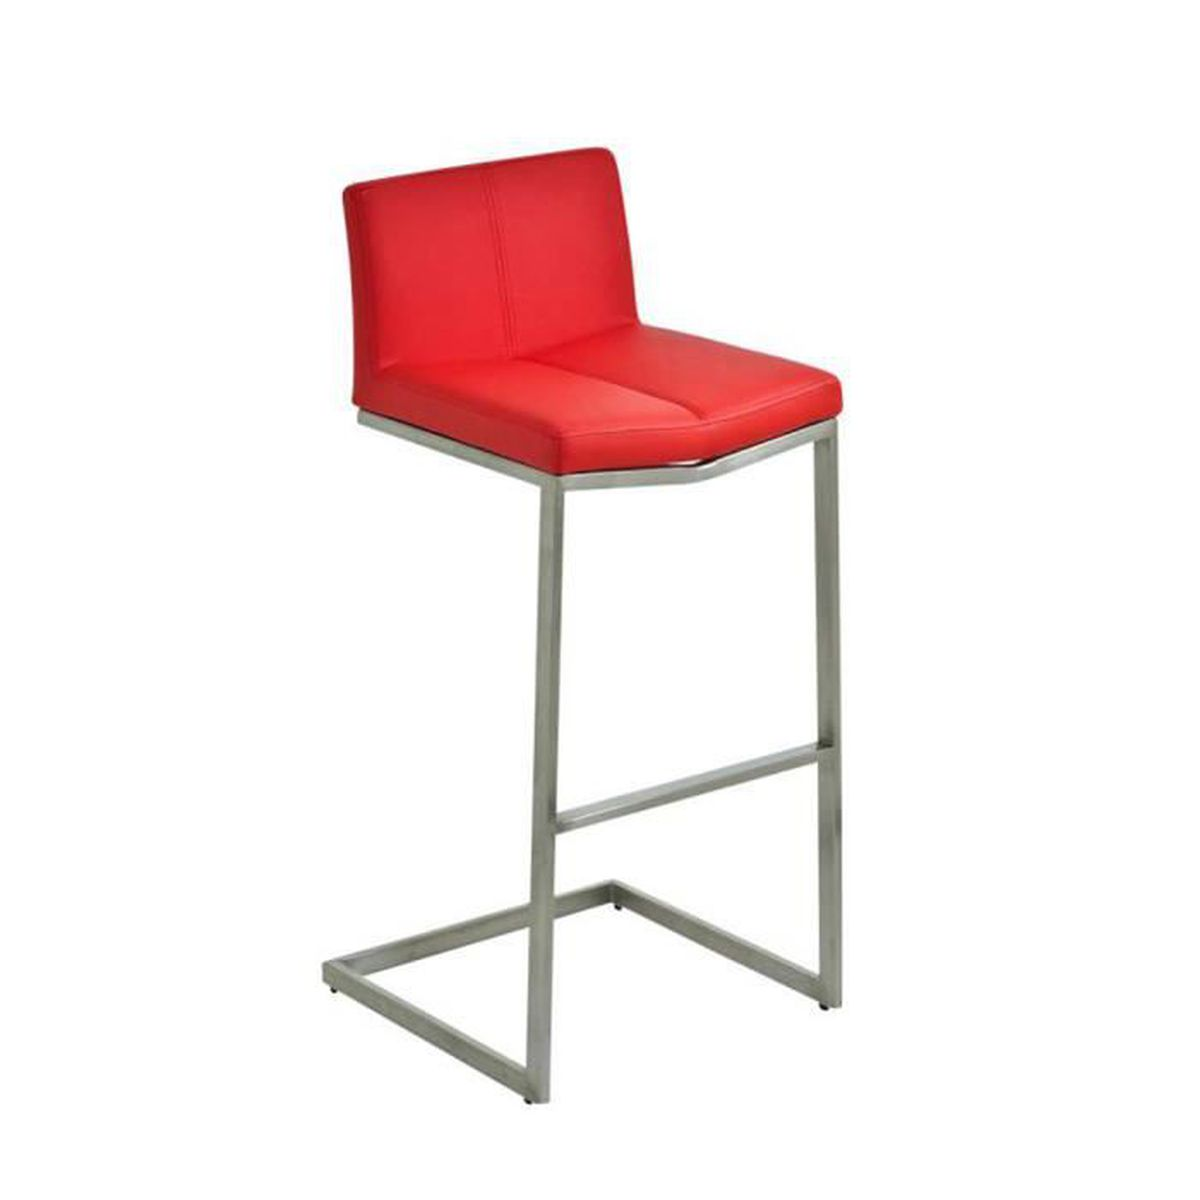 tabouret de bar avec si ge en similicuir coloris rouge 99 x 43 x 41 cm achat vente. Black Bedroom Furniture Sets. Home Design Ideas